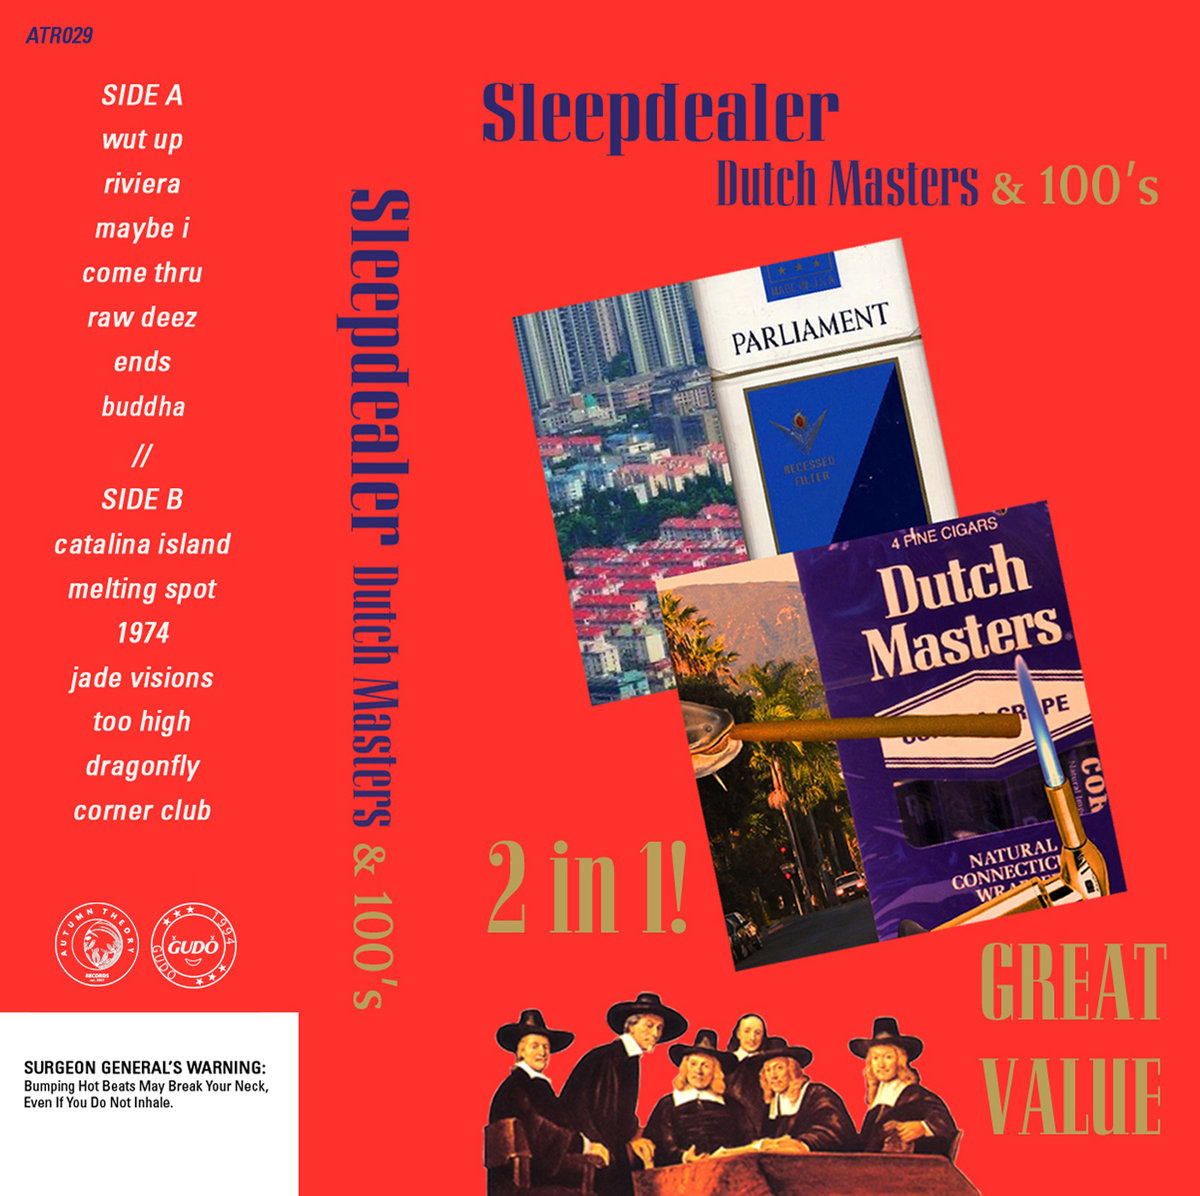 Sleepdealer – Dutch Masters & 100's